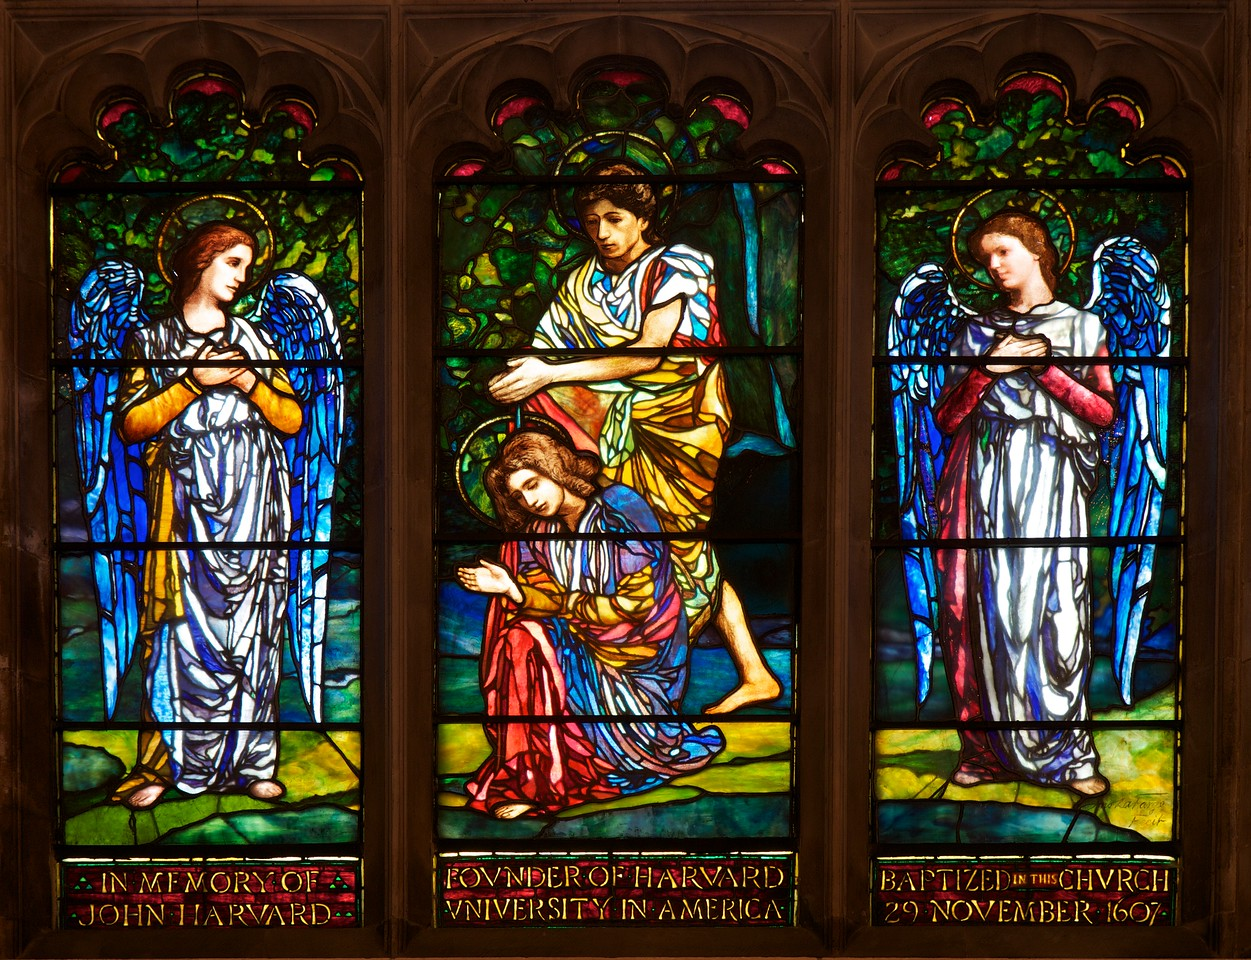 """Southward Cathedral, Harvard Chapel Stained Glass Window by John LaFarge <br><br> Founder of Harvard University John Harvard was born in near the church in Southwark. His father was a business associate of Shakespeare's family and Shakespeare is believed to have been present when John was baptized in the church in 1607, according to <a href=""""http://www.sacred-destinations.com/england/london-southwark-cathedral"""">Sacred Destinations.</a> <br><br> John Harvard is commemorated in the church by the Harvard Chapel, off the North Transept, restored with funds received from members of Harvard University. John was educated at Emmanuel College, Cambridge and graduated in 1635. """"The following year he married Anne Sadler and having no relatives left in Southwark, decided to join his brother Puritans to form a godly commonwealth in the New World. <br><br> Arriving in Boston, with his library of 320 volumes, Harvard was admitted a townsman of Charlestown and ministered in the 'First Church'. He was described as a scholar and lover of learning. He died childless in 1638. He left his books (of which only one remains) and half his fortune, £779 17s 2d, to the college of Newtown, a foundation for the 'education of English and Indian youth in knowledge and godliness'. Newtown became Cambridge, Massachusetts and the college became Harvard University"""" <a href=""""http://cathedral.southwark.anglican.org/visit/area-2"""">according to the church website.</a> <br><br> Two panels of stained glass windows are the highlight of the chapel. The first is a window given by the then American Ambassador to London, Joseph Choate, in 1905.  Depicting the baptism of Christ by John the Baptist, it is by American artist John La Farge. It uses a technique of mixing several colors in one piece of opalescent glass. The second shows the Harvard crest (Veritas, Latin for """"Verity"""" or """"Truth"""") and Emmanual College, Cambridge with an inscription """"This Window, Damaged During World War 2 By Enemy Bombing, Was Restored I"""